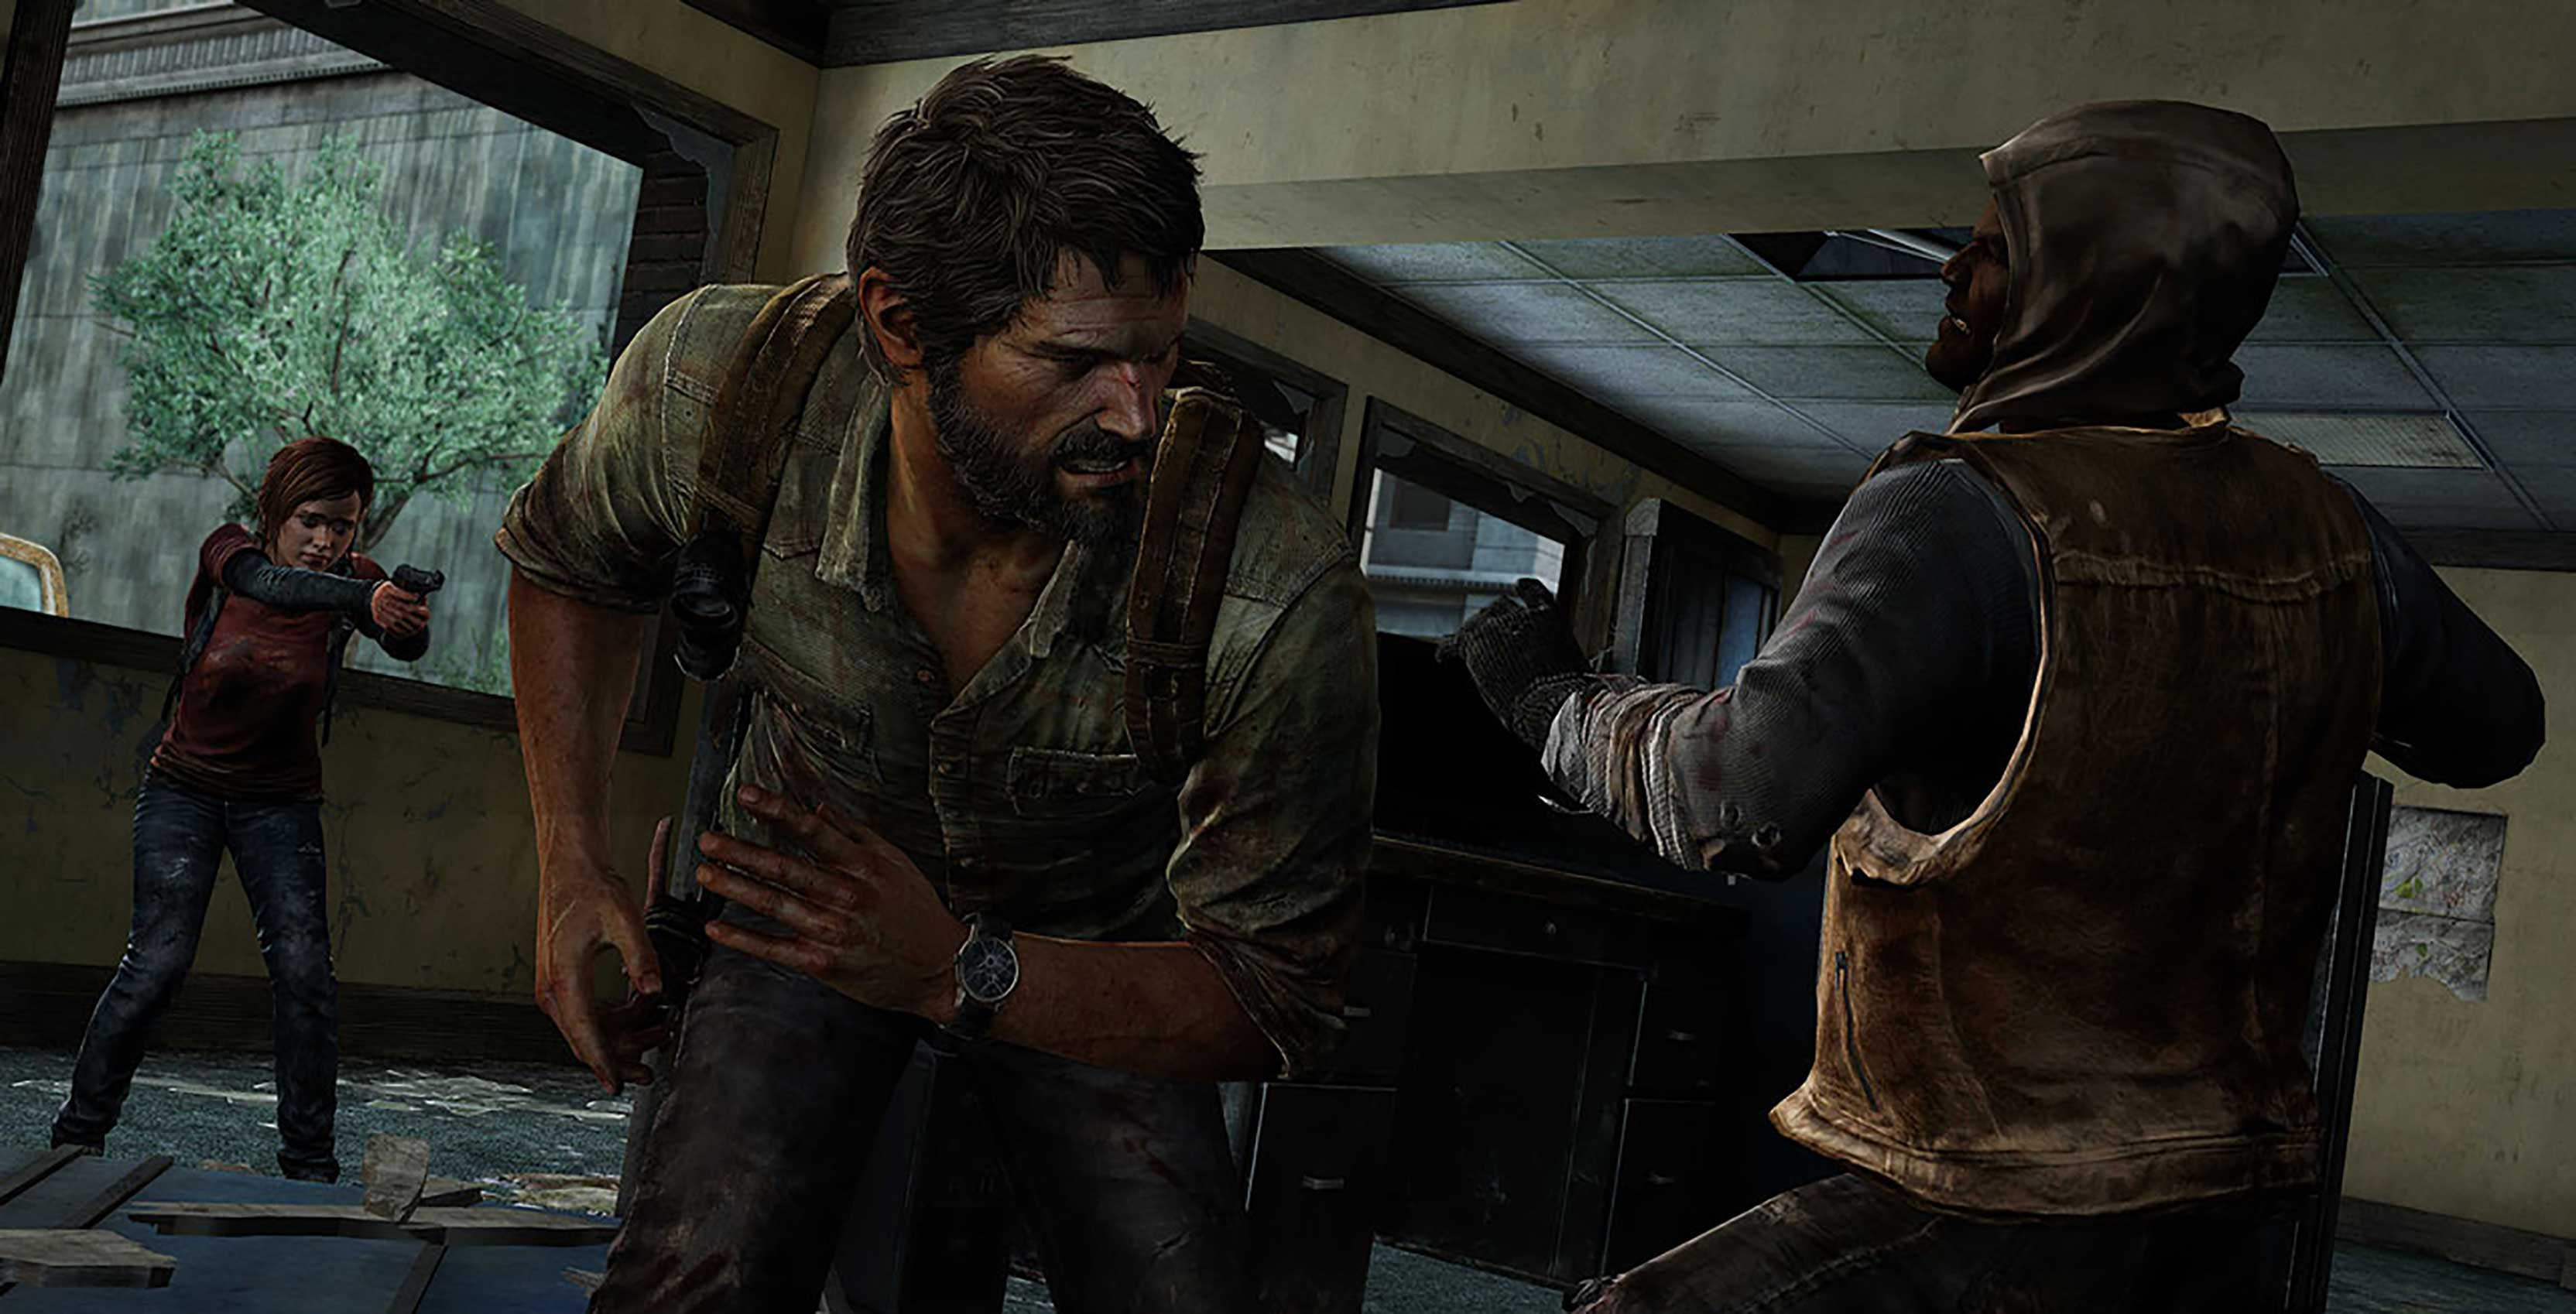 The Last of Us Remastered combat